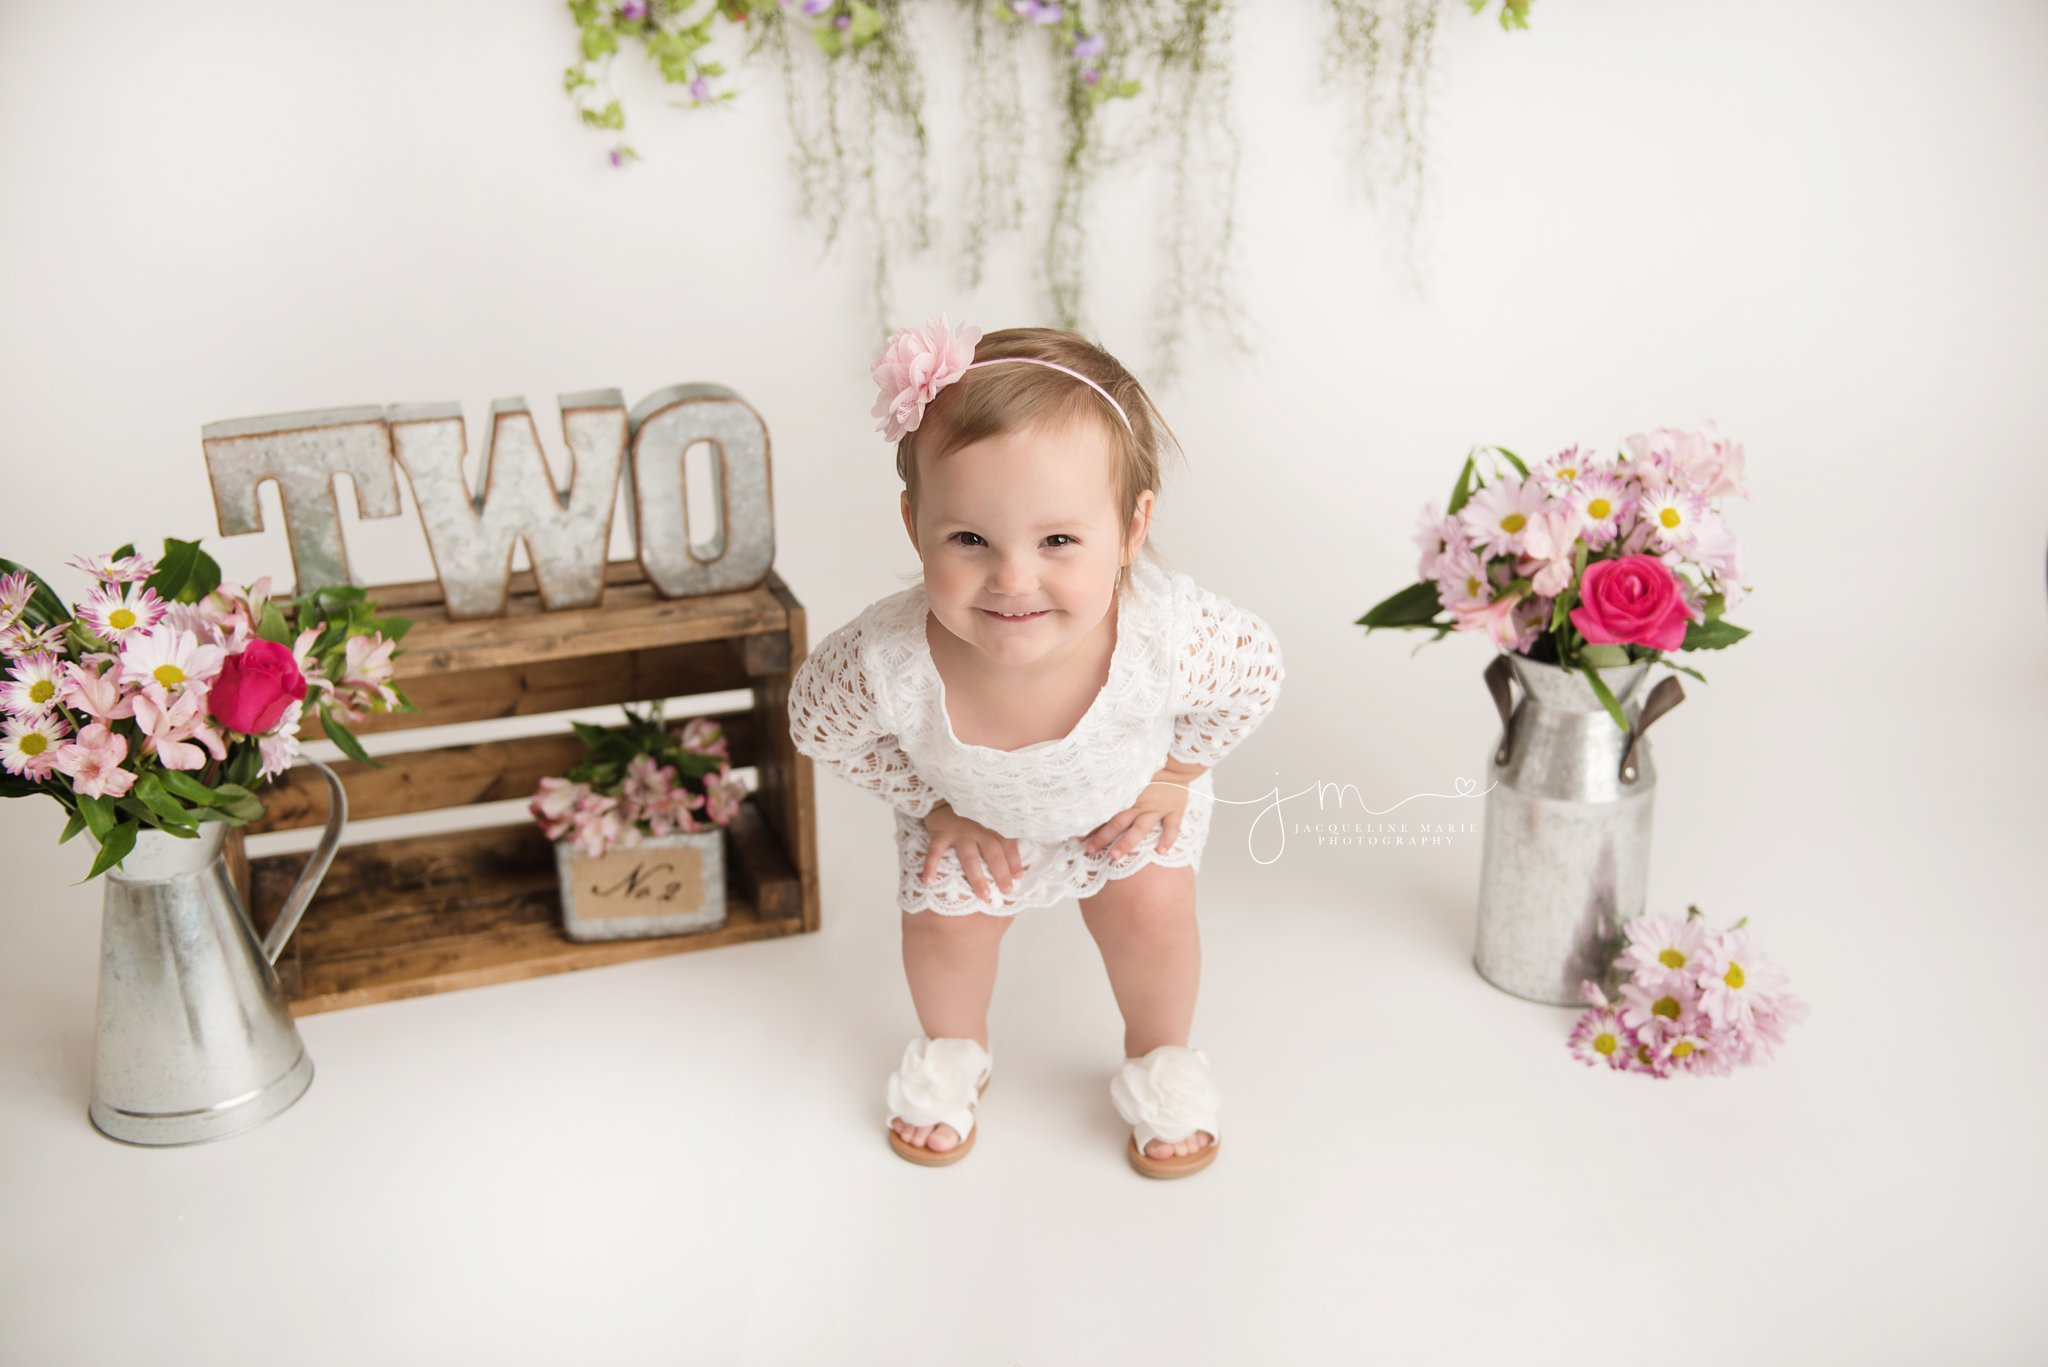 columbus ohio children and baby photographer features 2 year old little girl wearing white lace dress for birthday portraits